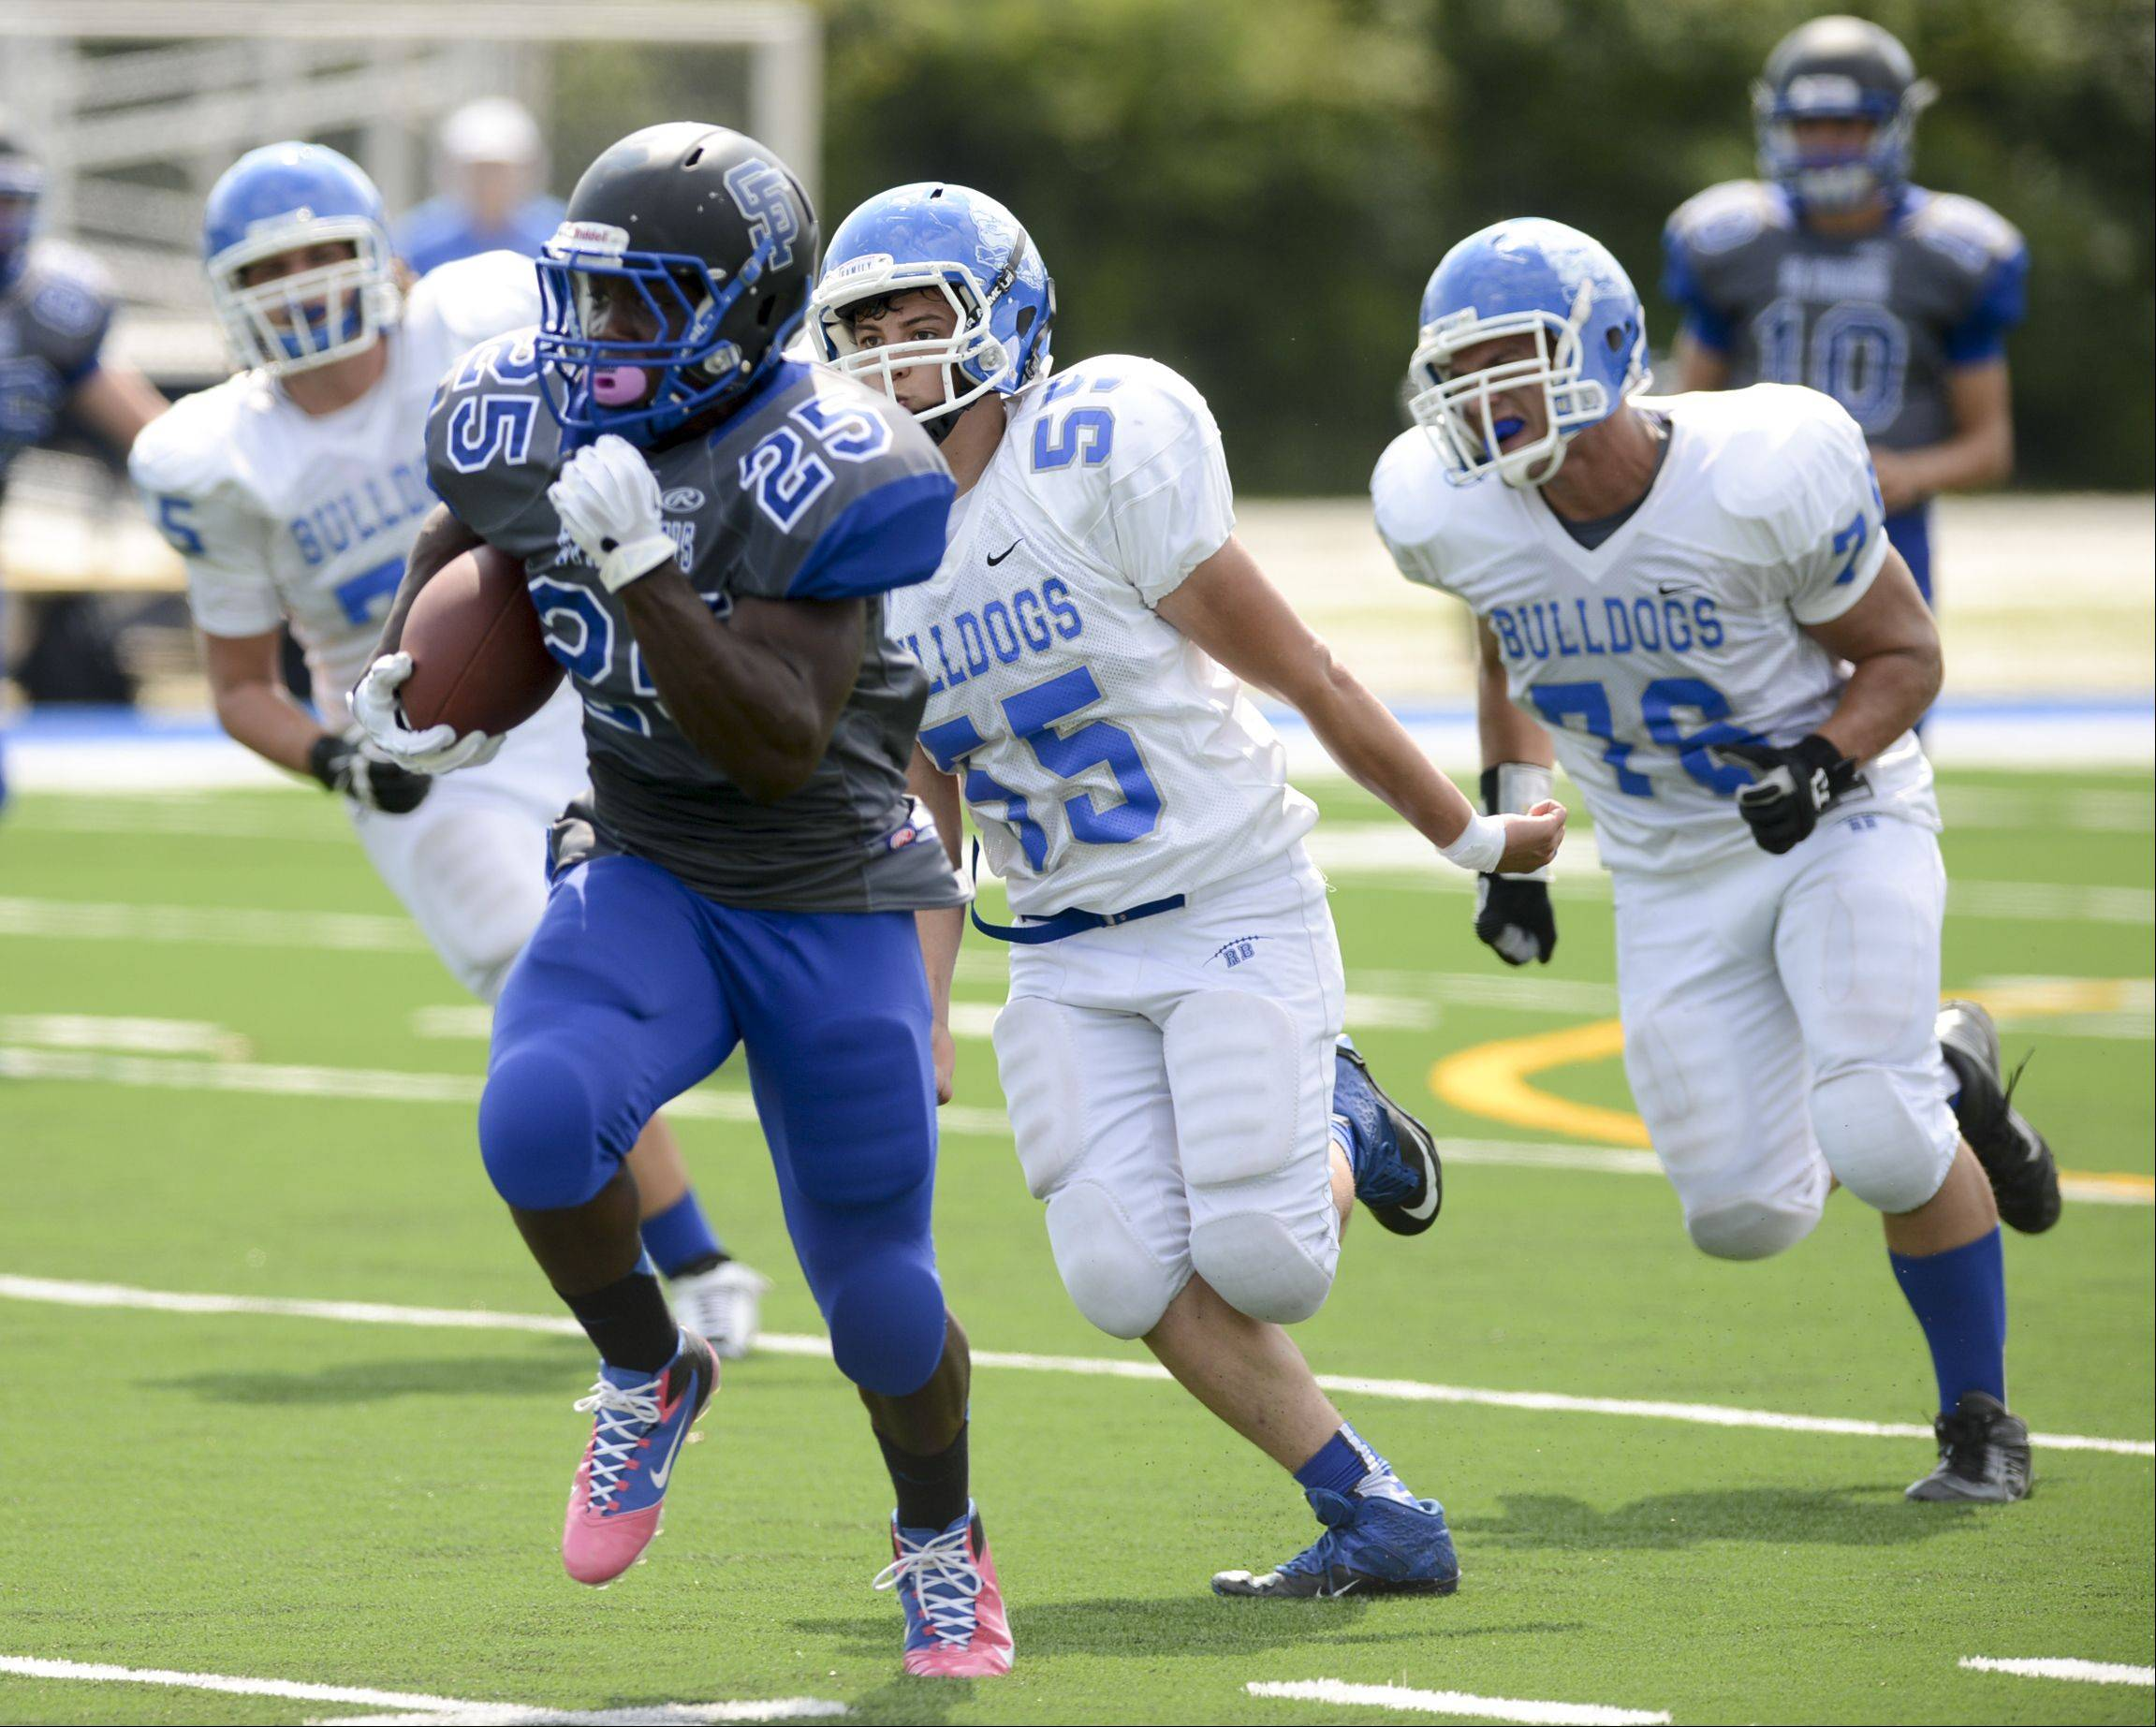 Images from the St. Francis vs. Riverside-Brookfield football game Sunday, September 1, 2013.